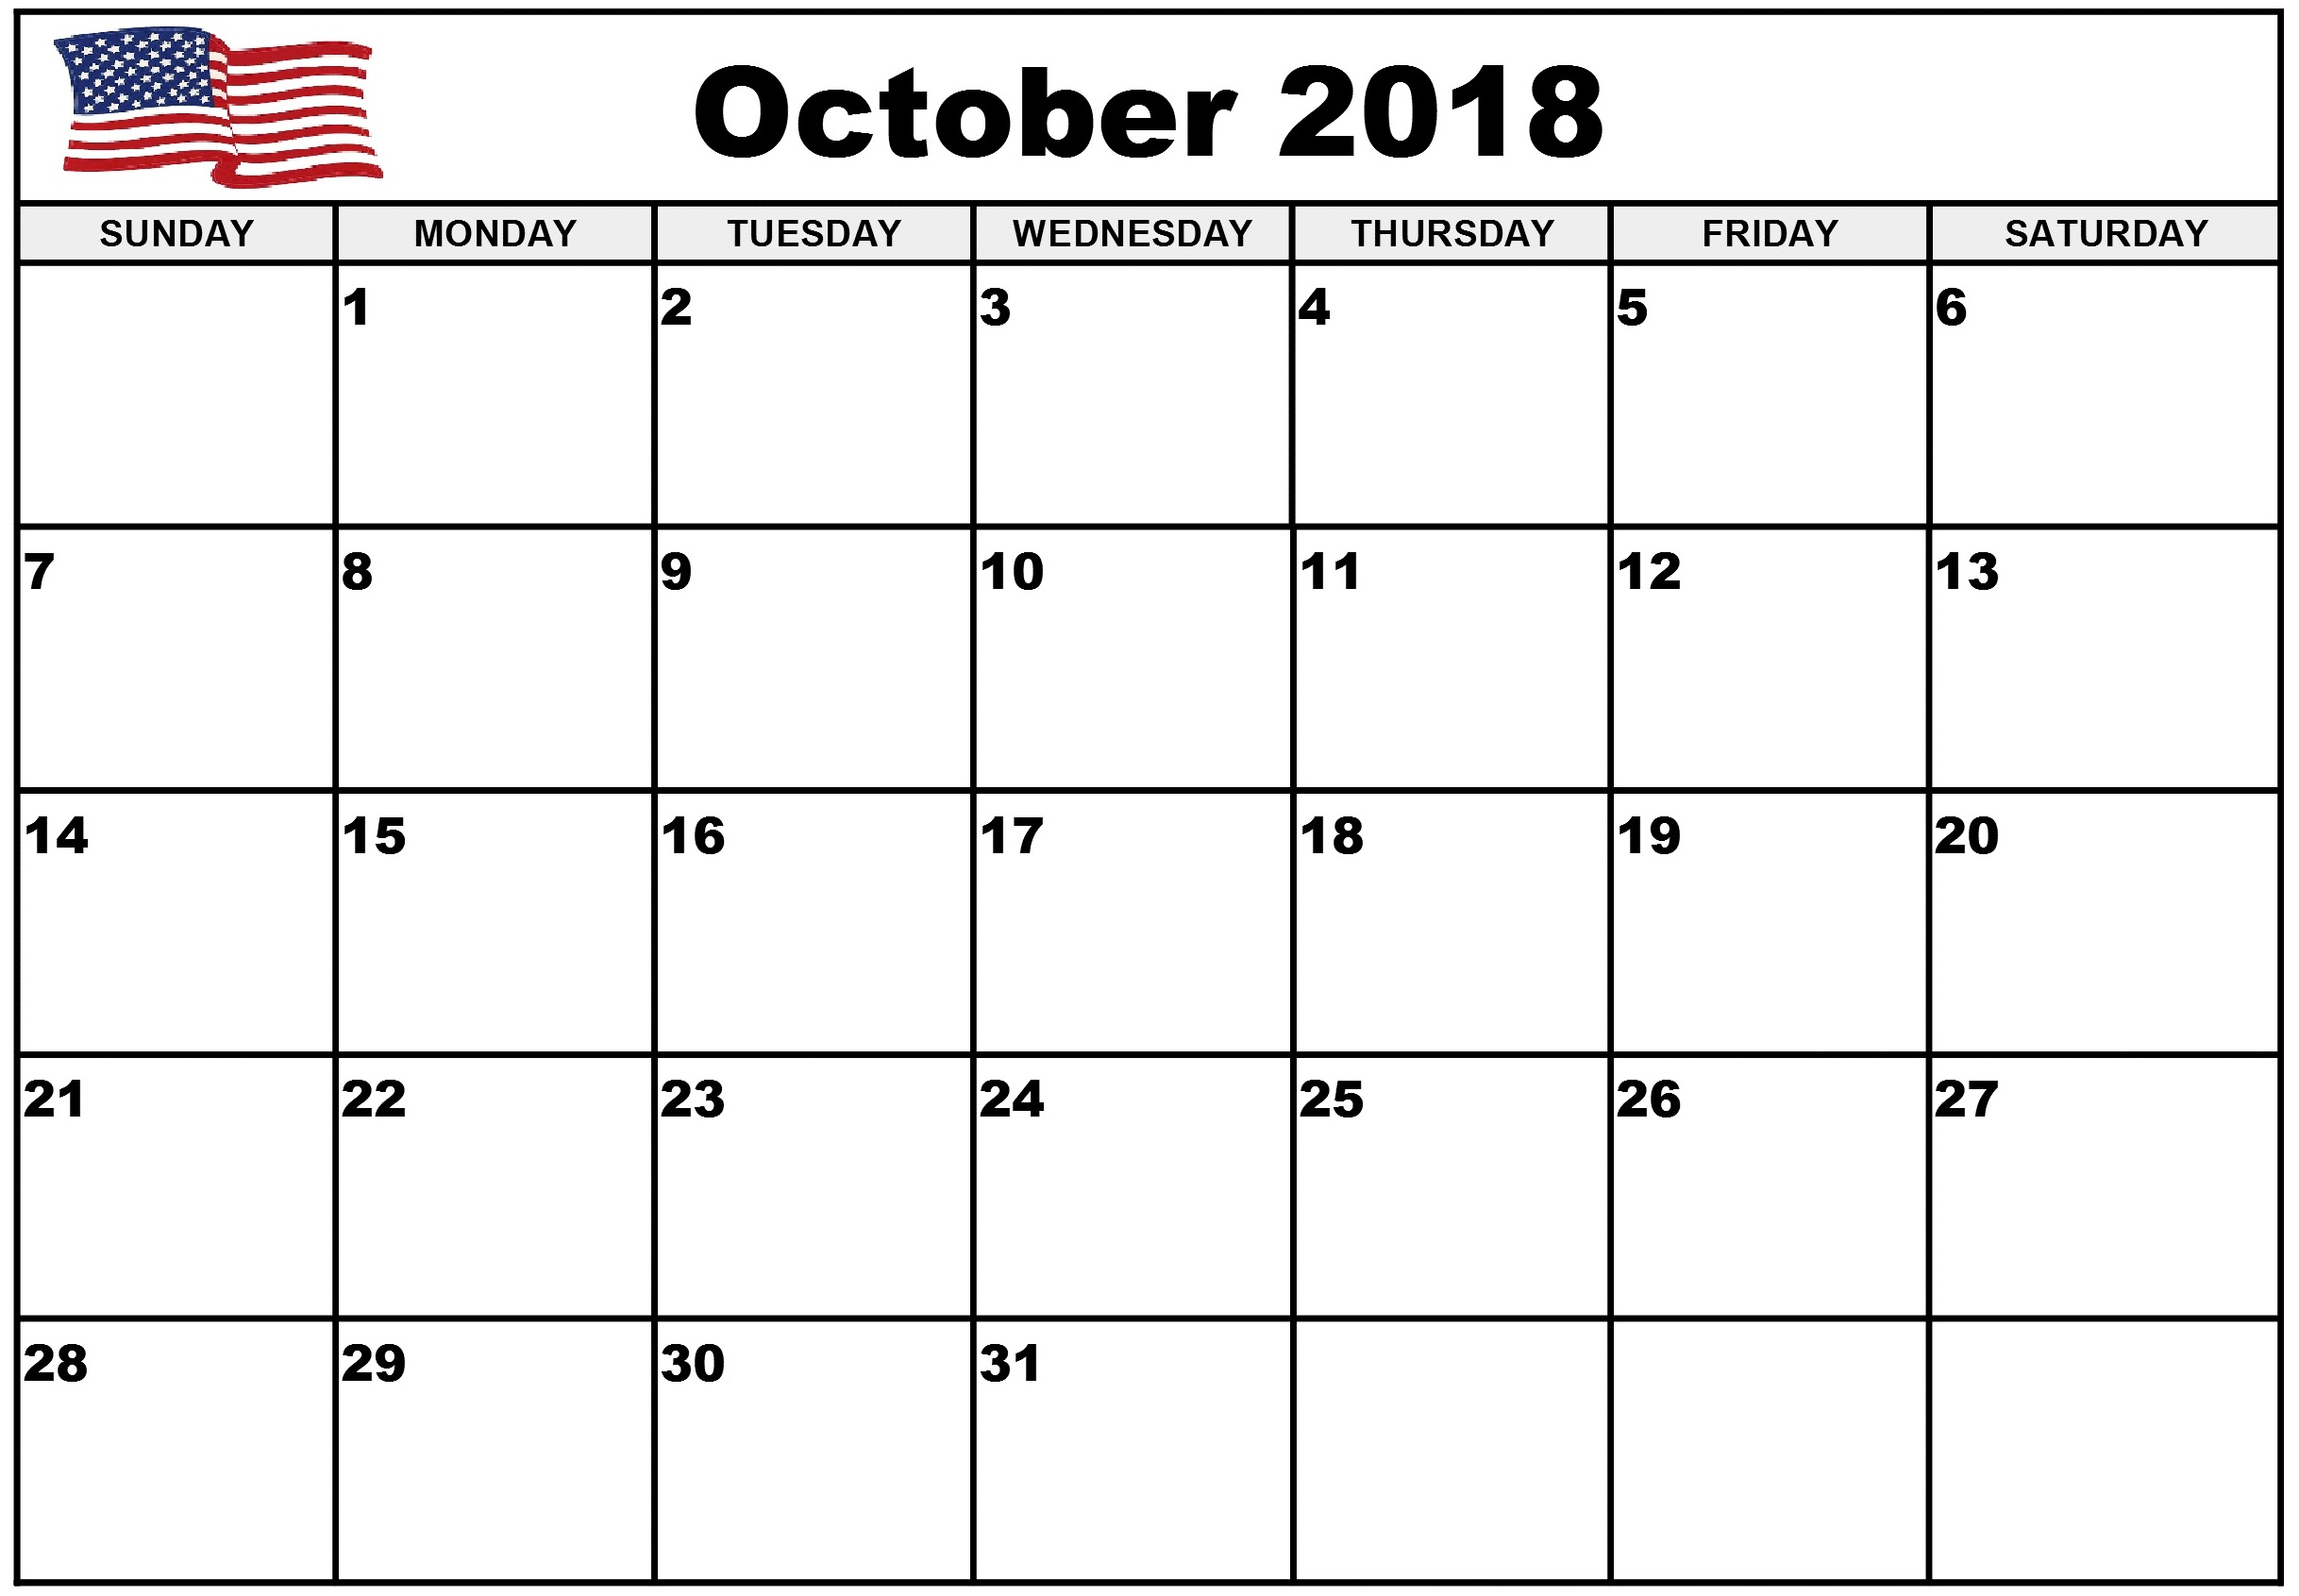 October 2018 Calendar For USA